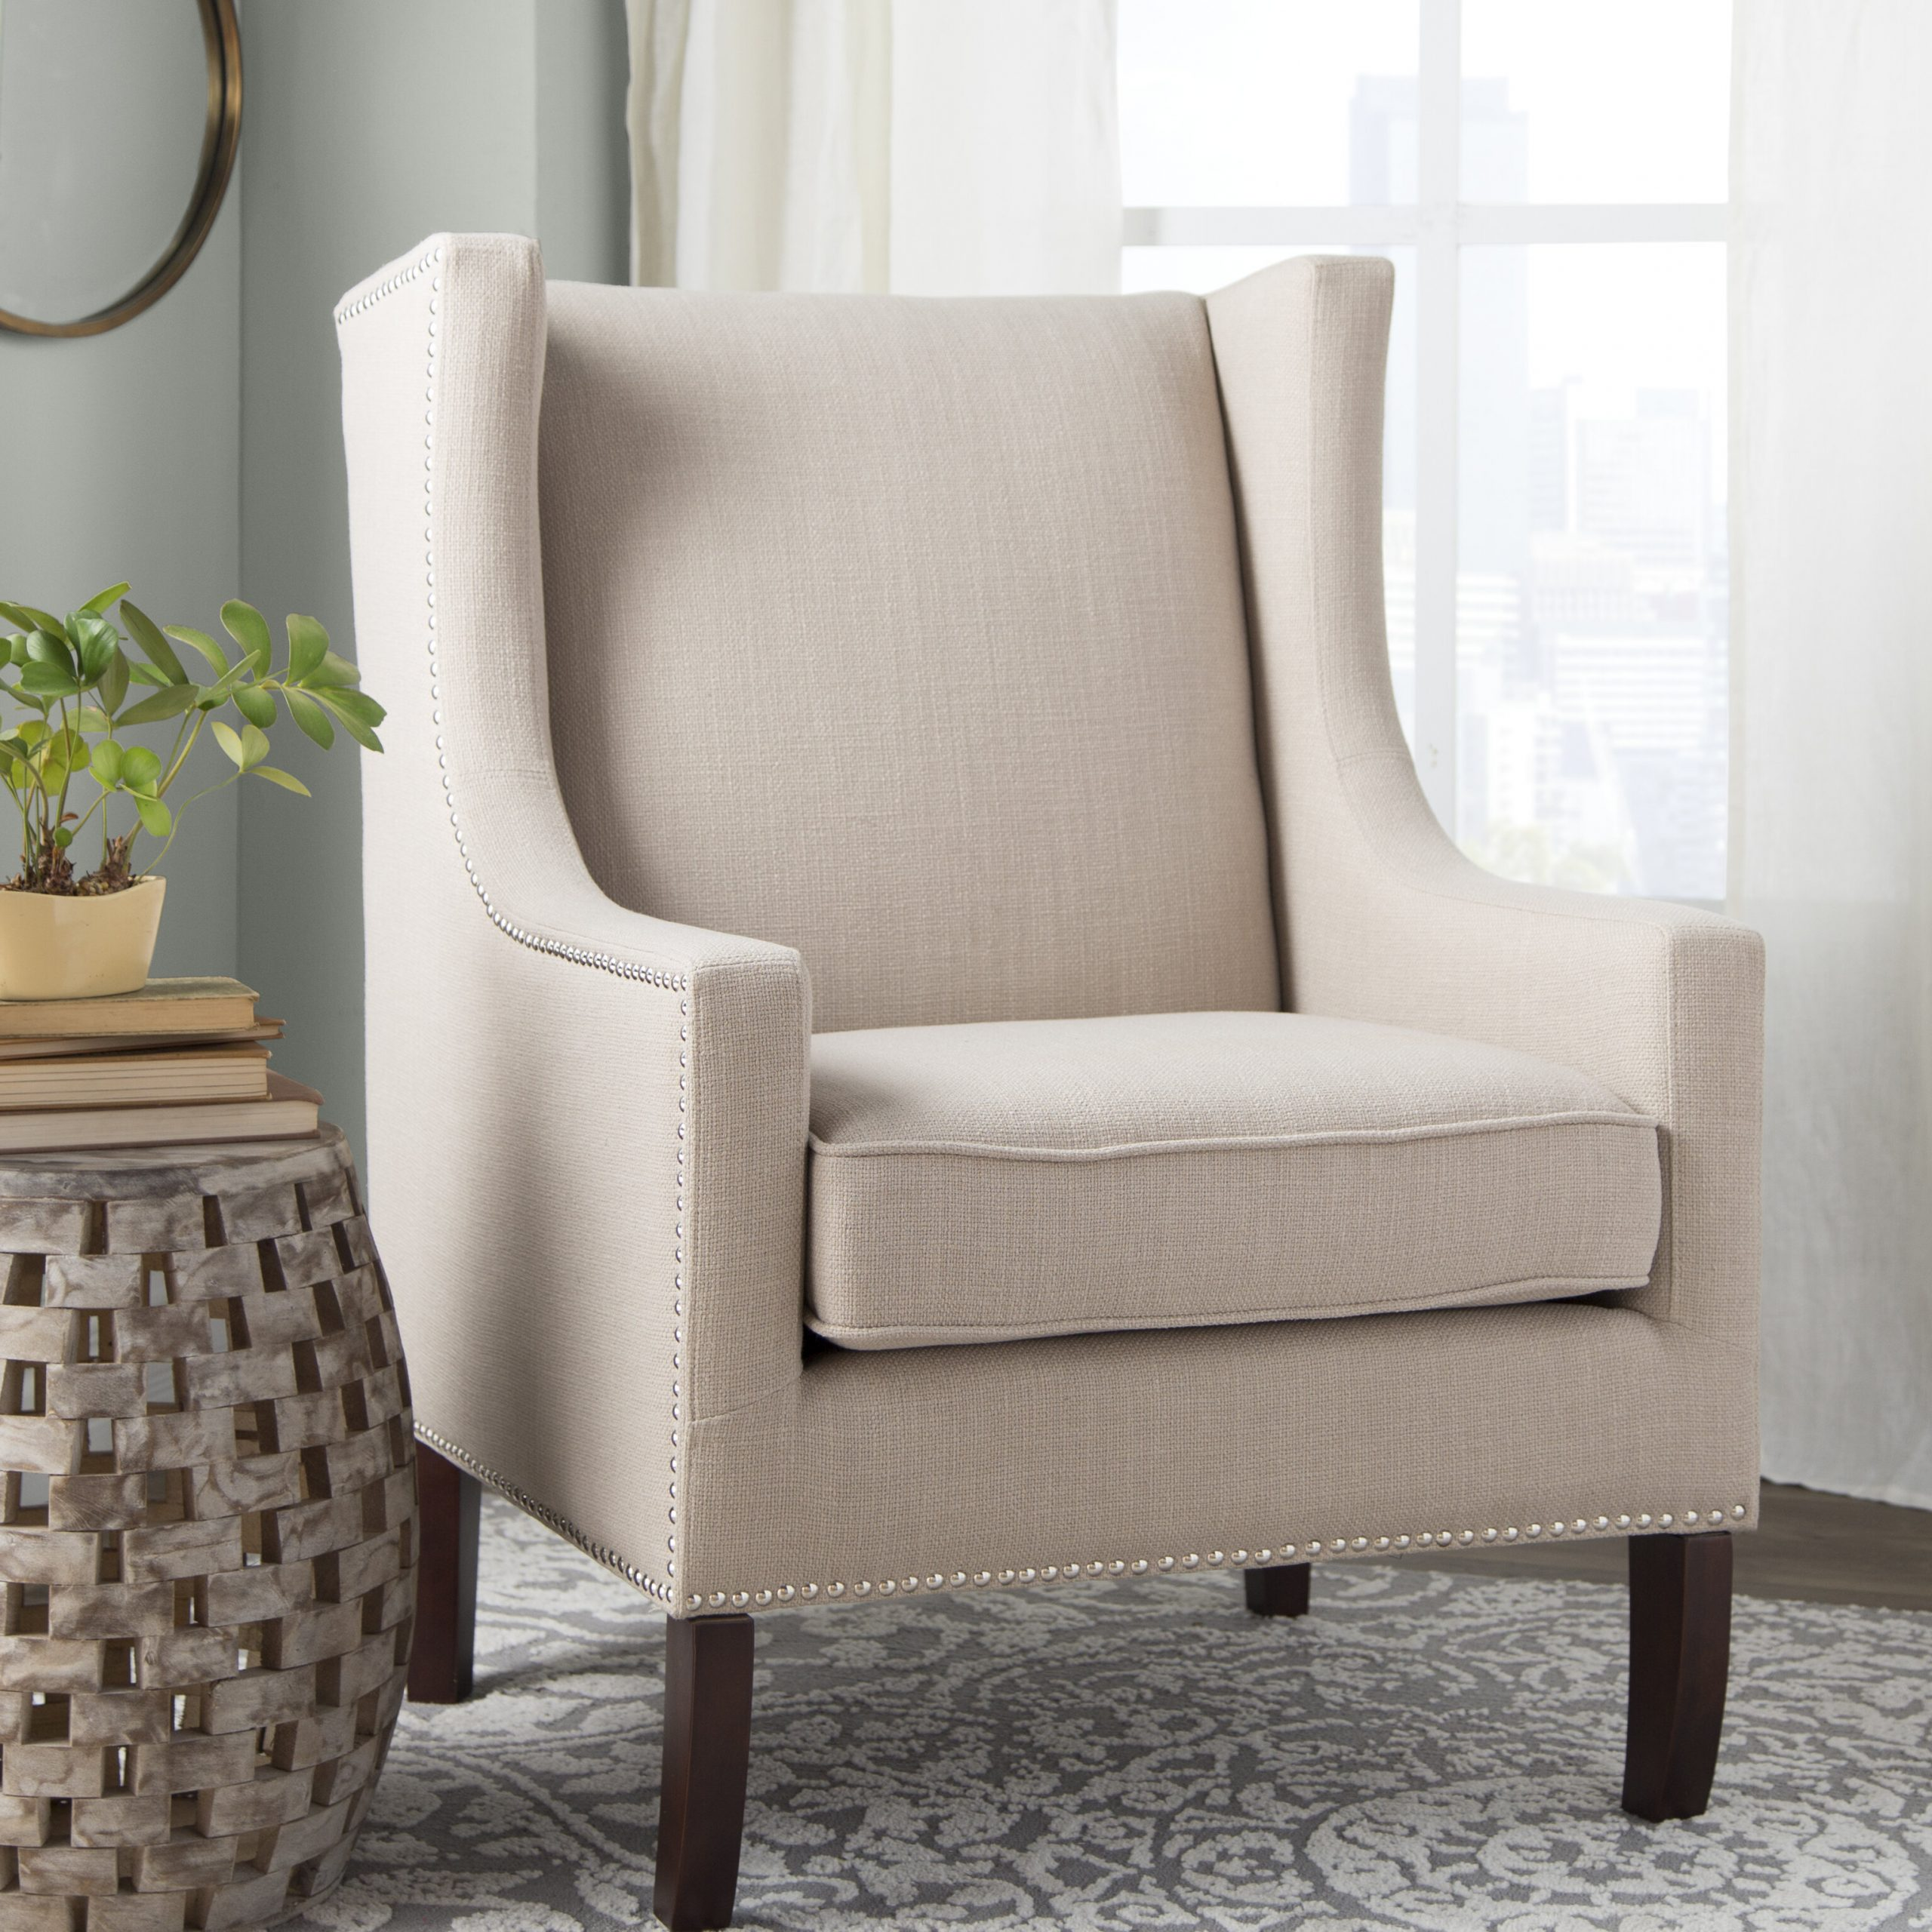 Wayfair For Ragsdale Armchairs (View 15 of 20)